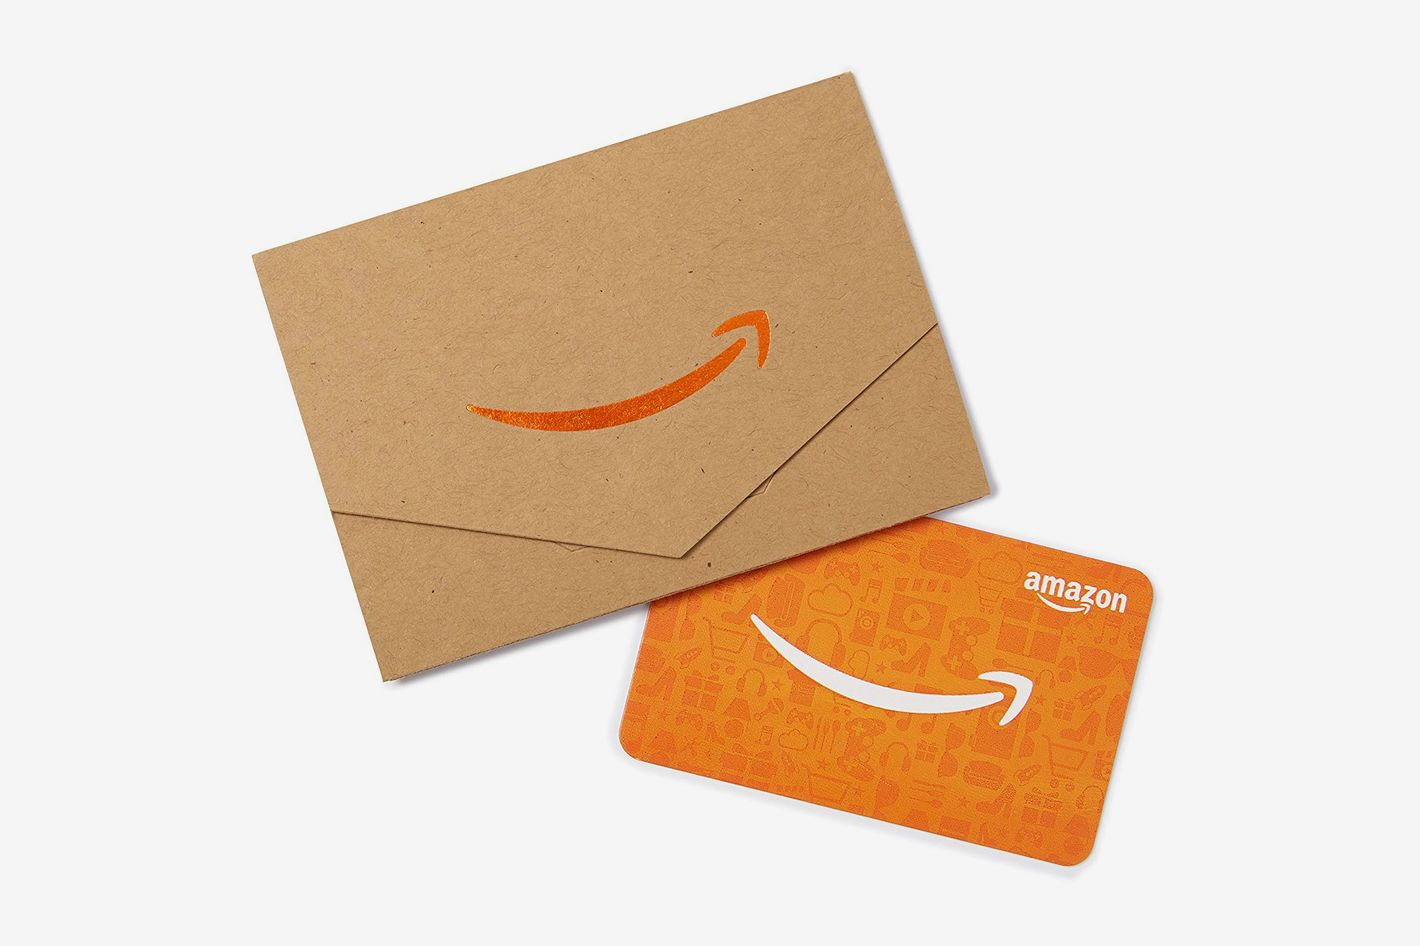 Amazon Gift Card In A Mini Envelope